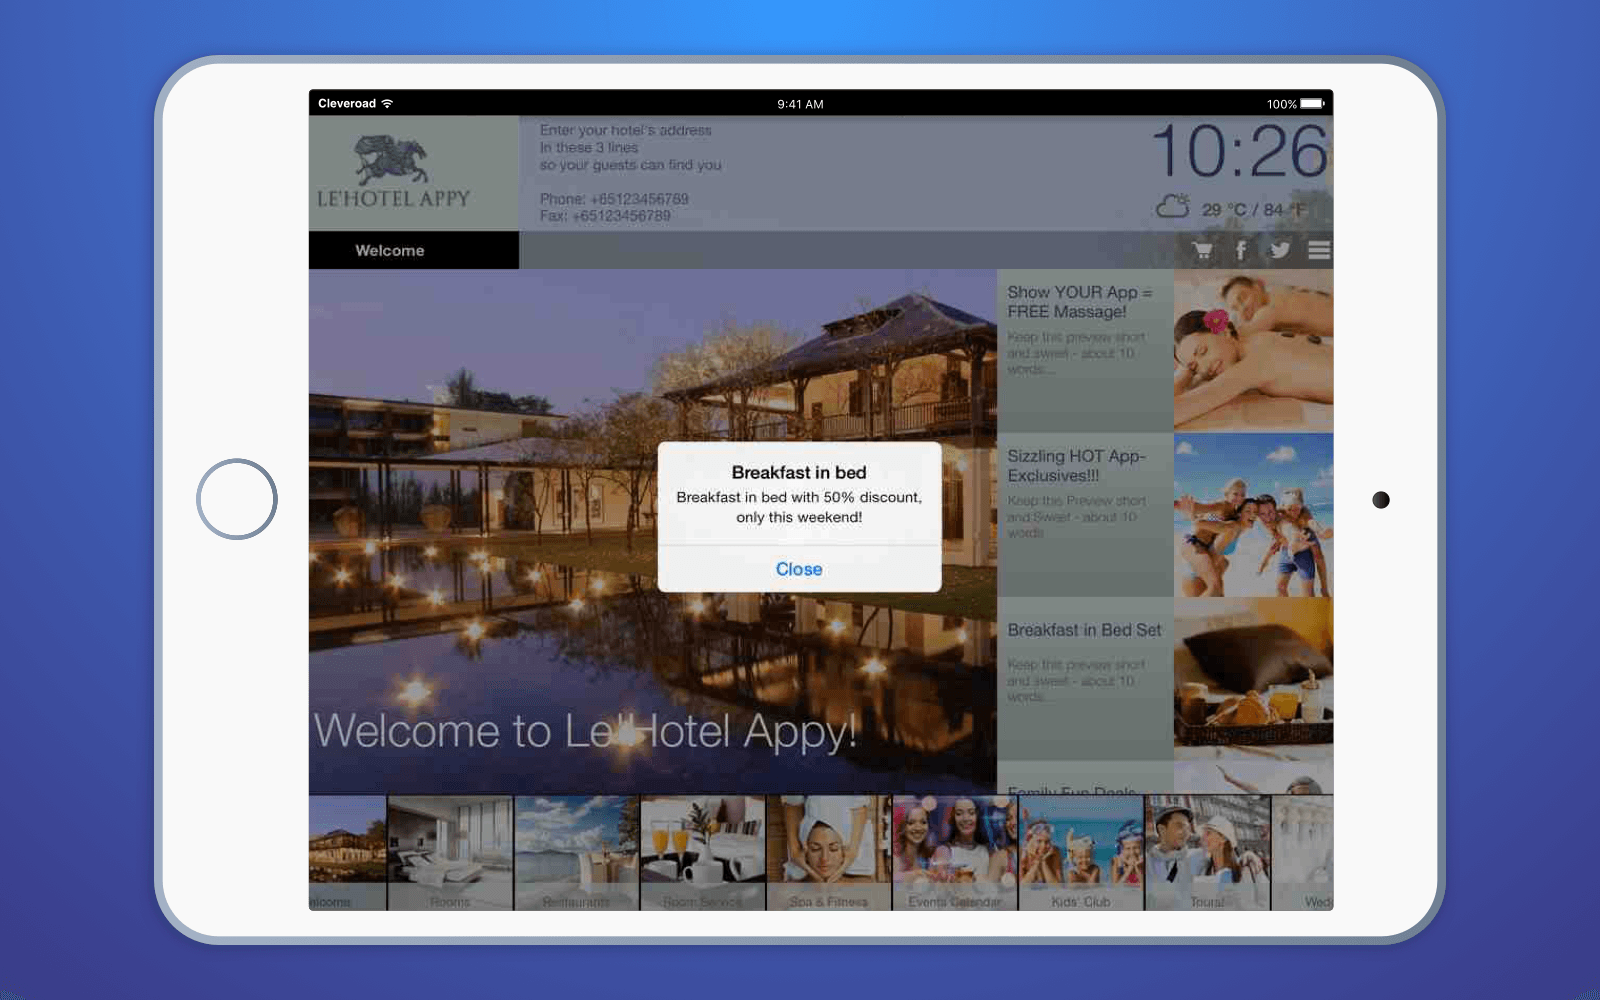 Hotel application: Push notifications